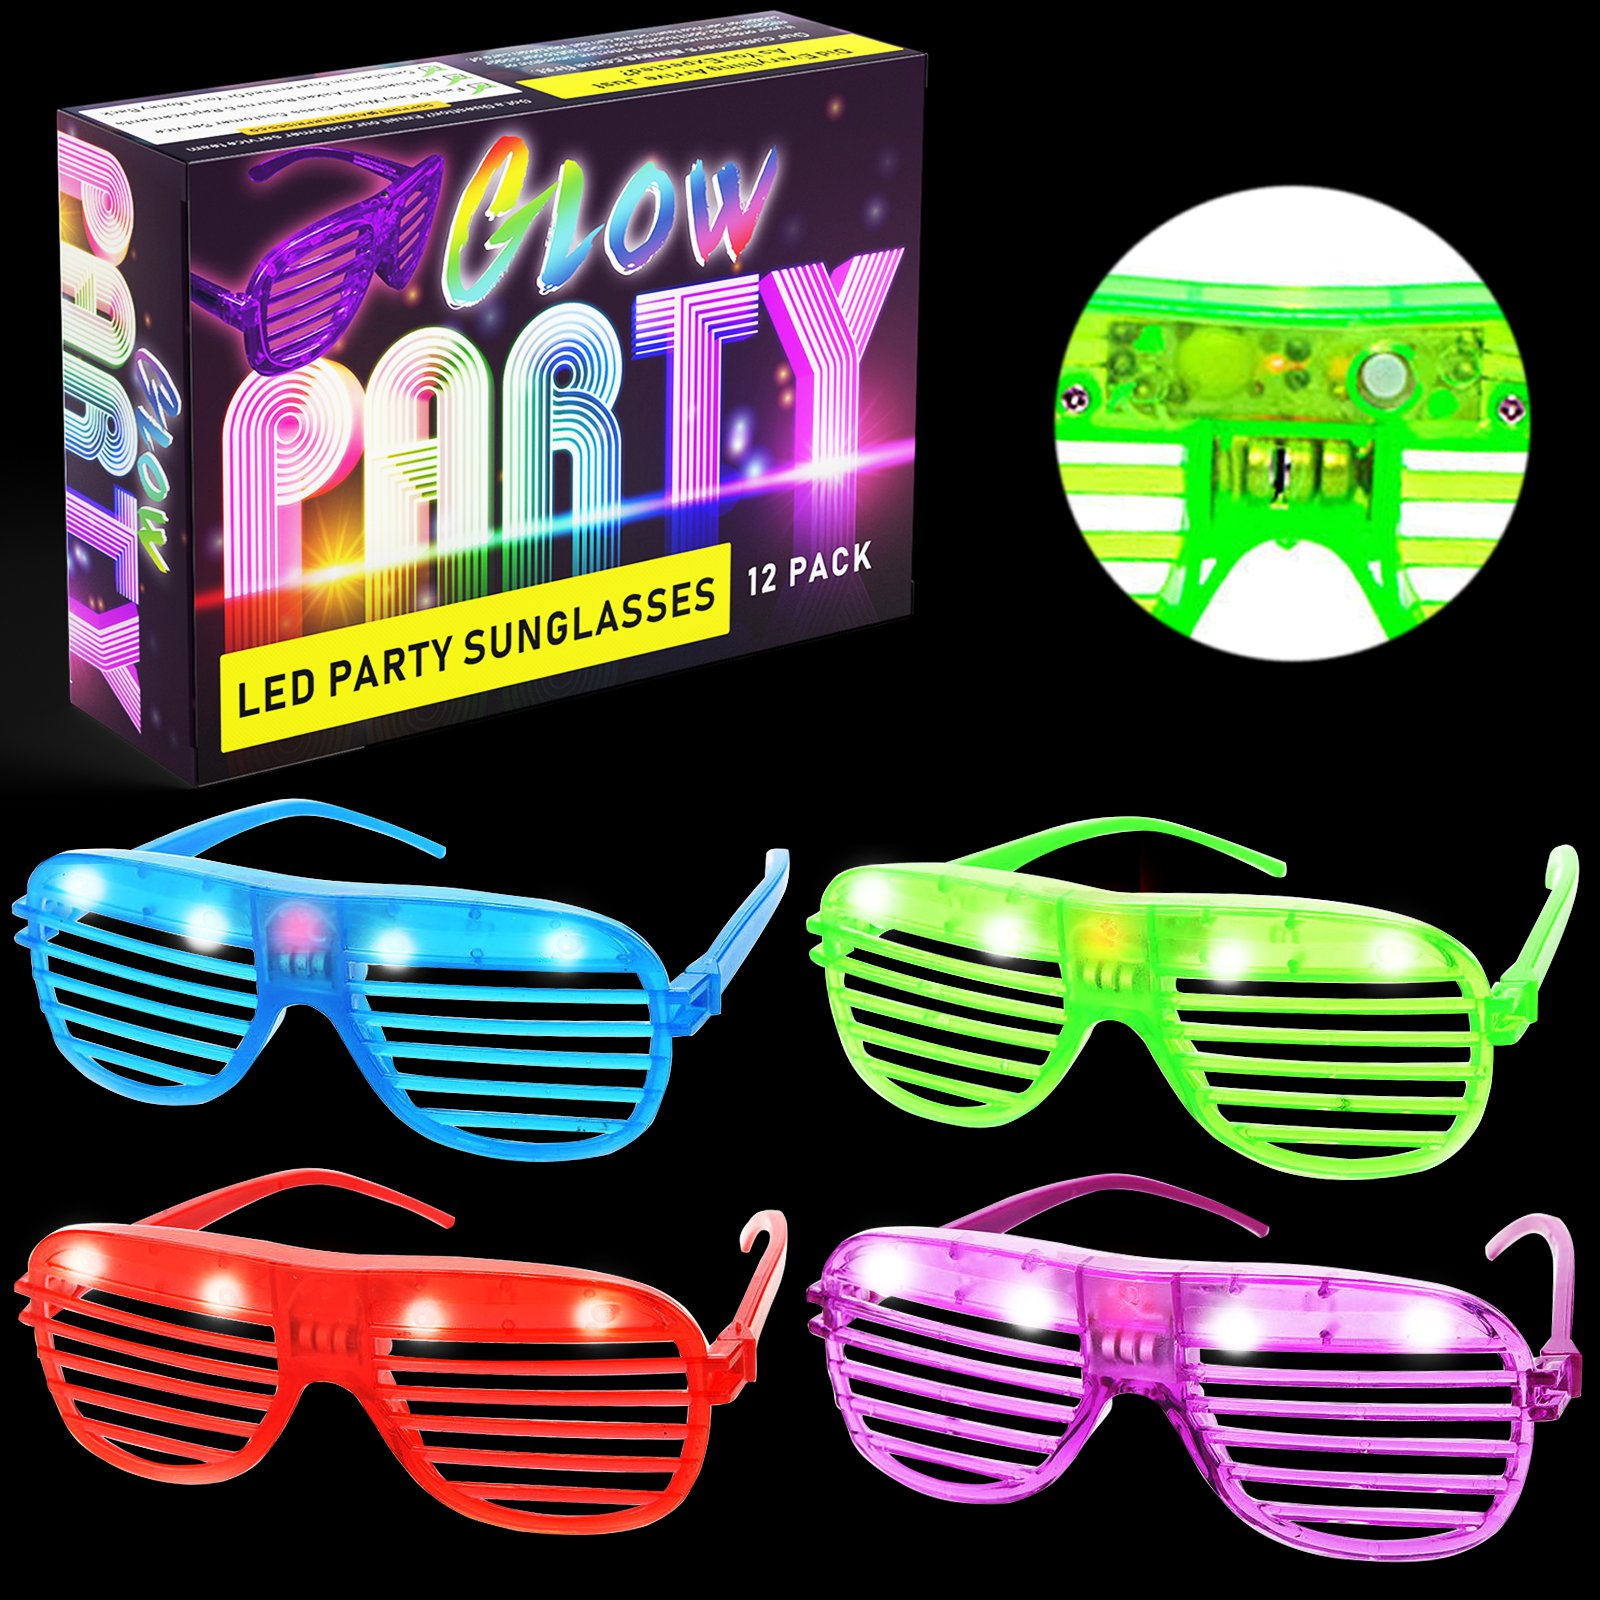 LED Glasses & Kids Party Favors - 12 Pack Glow in The Dark Light up Neon Parties Supplies for Raves and Teen Birthdays - Bulk Shutter Shades Fun for All Ages and Glowing Events!